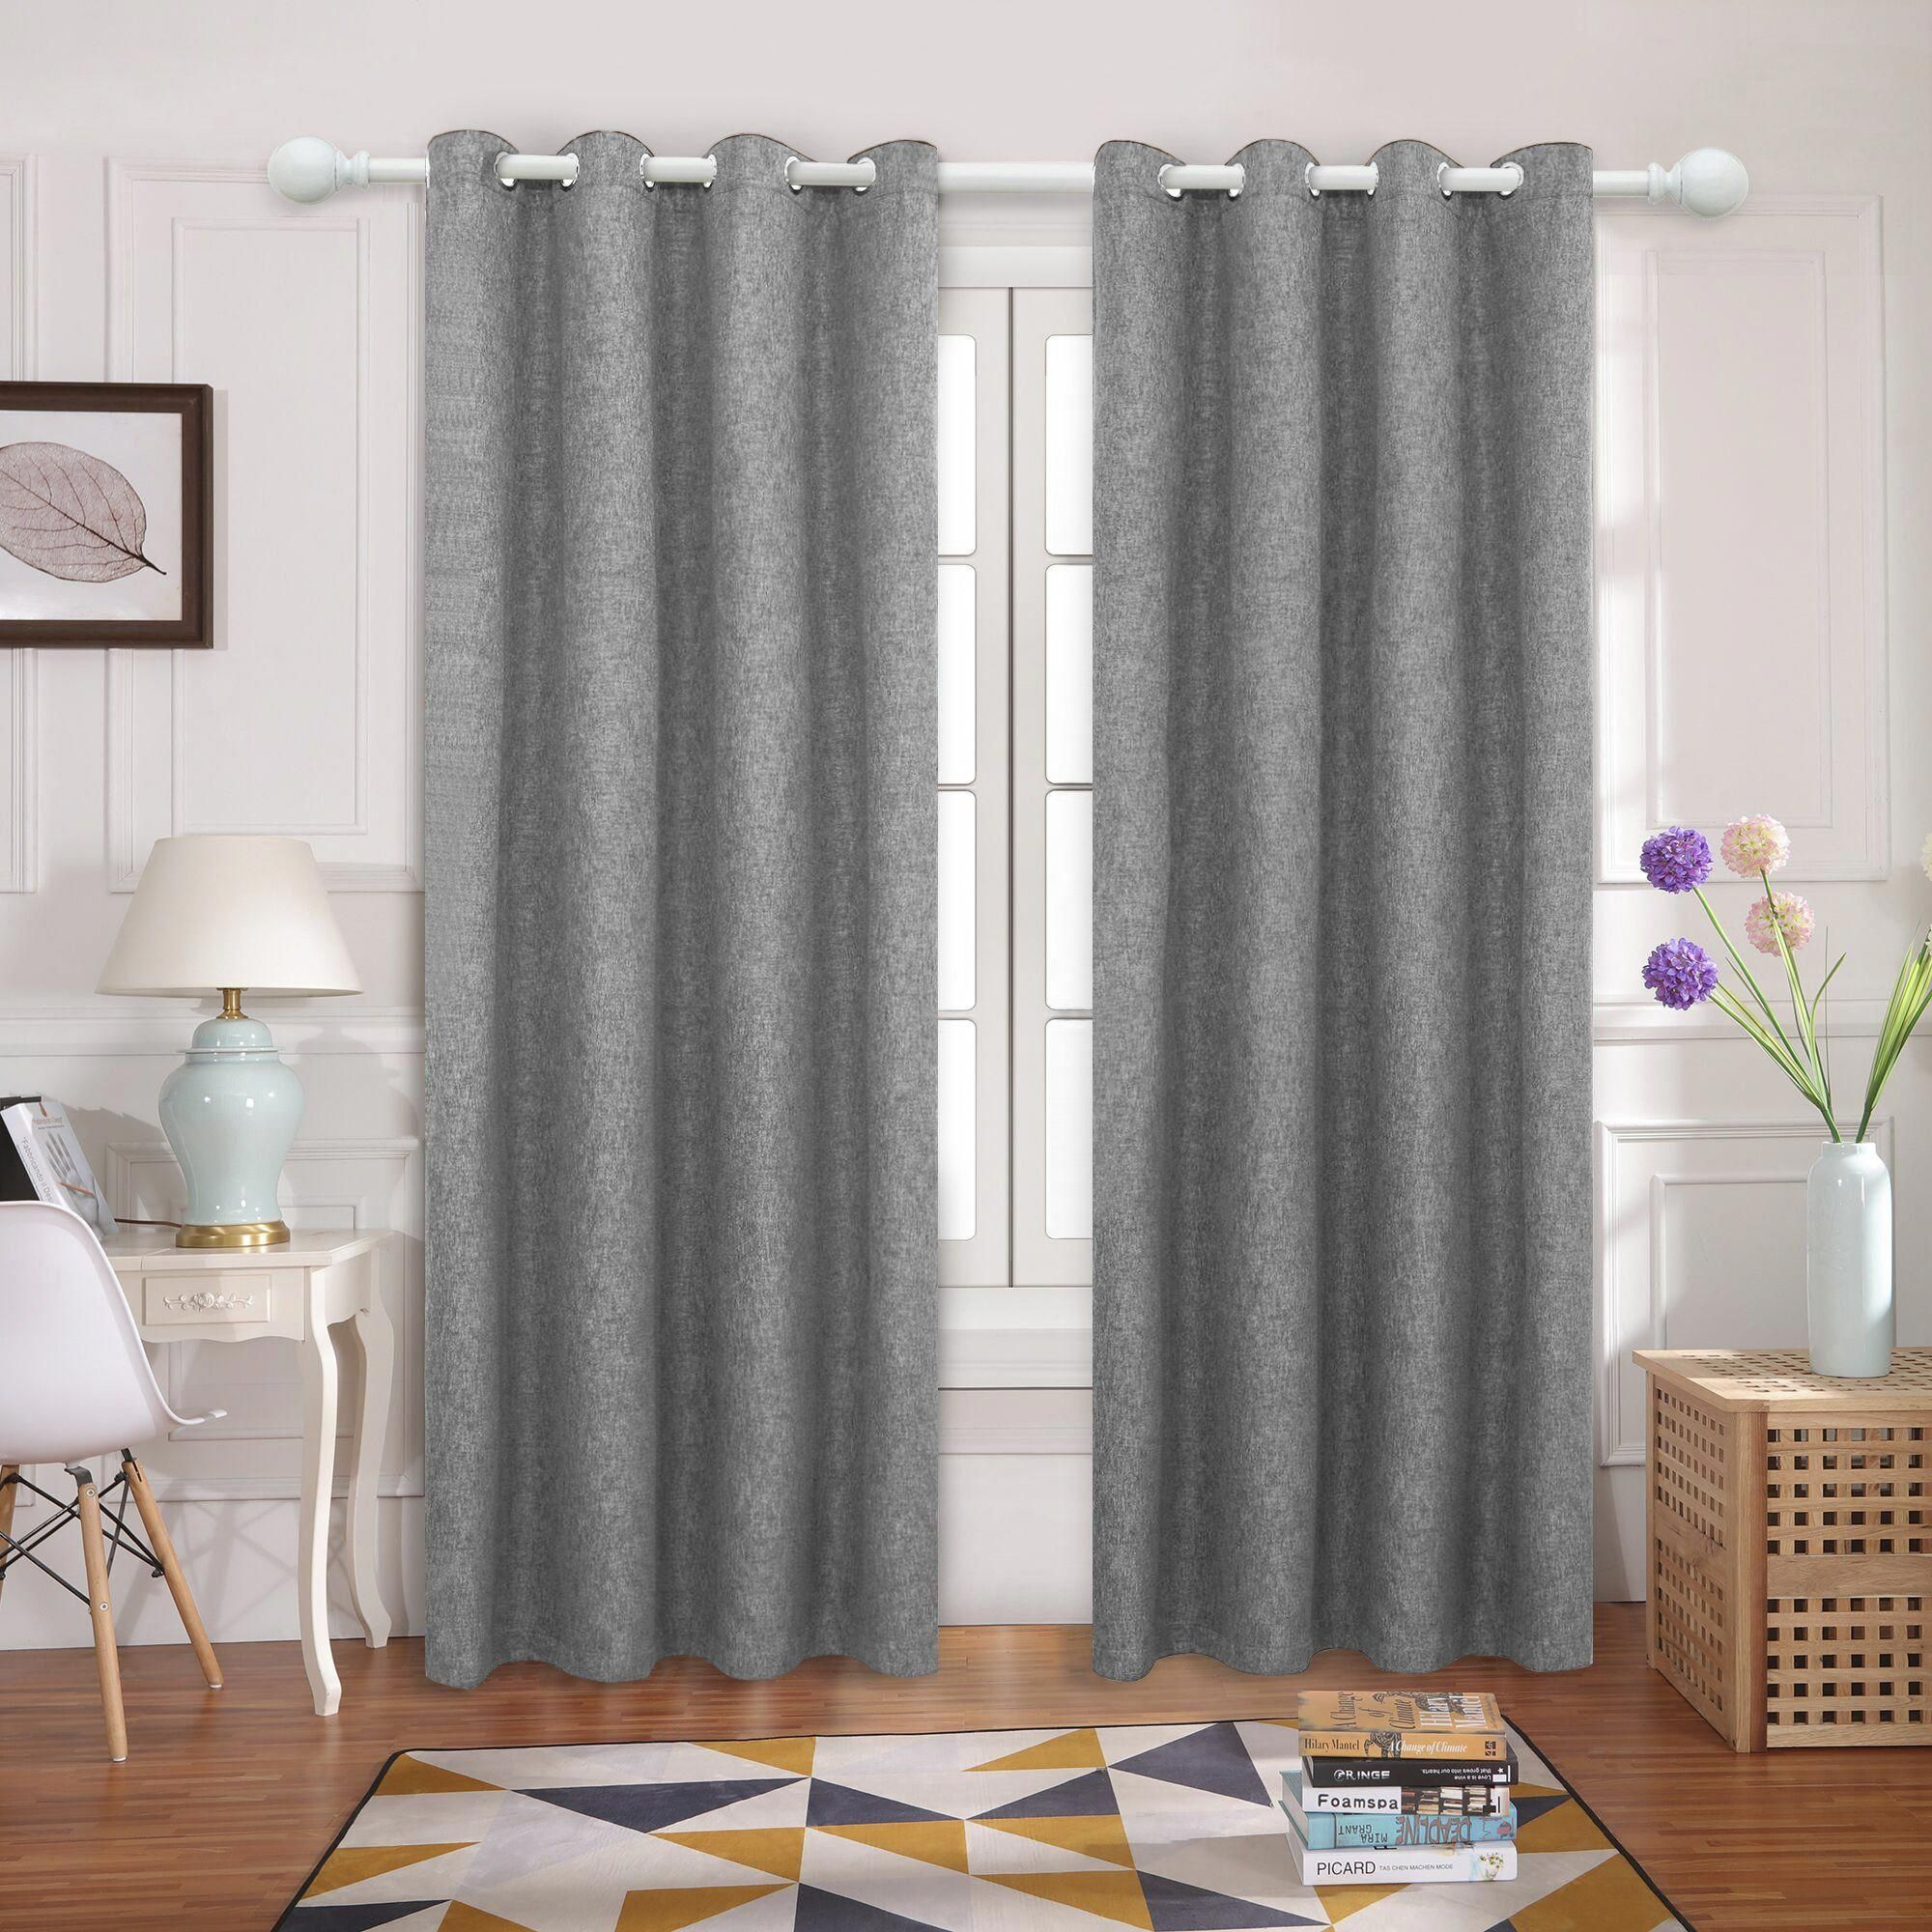 Blackout Drapes Thermal Insulated Linen Grommet Window Curtains Moderncurtains Curtains Blackout Drapes Drapes Grommet